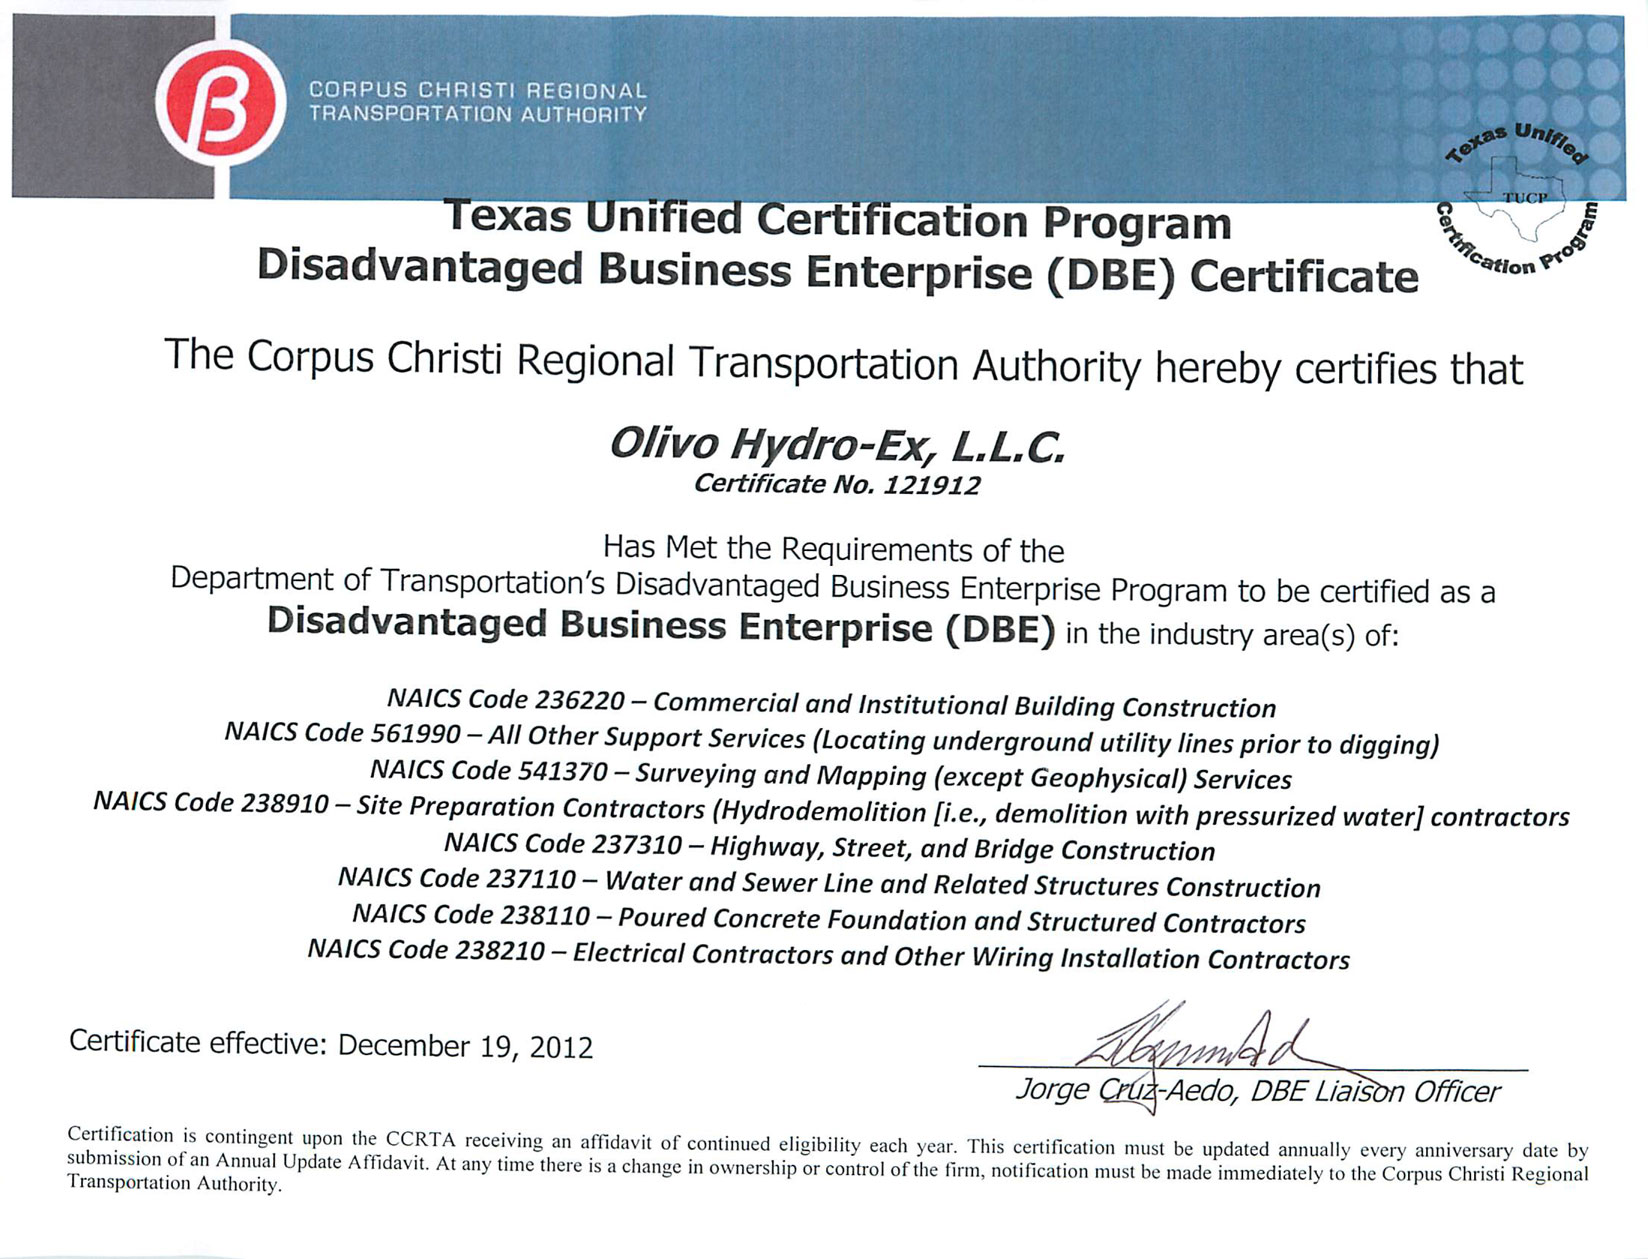 Surveying hydro ex llc certifications click on the each logo to view certifications xflitez Choice Image